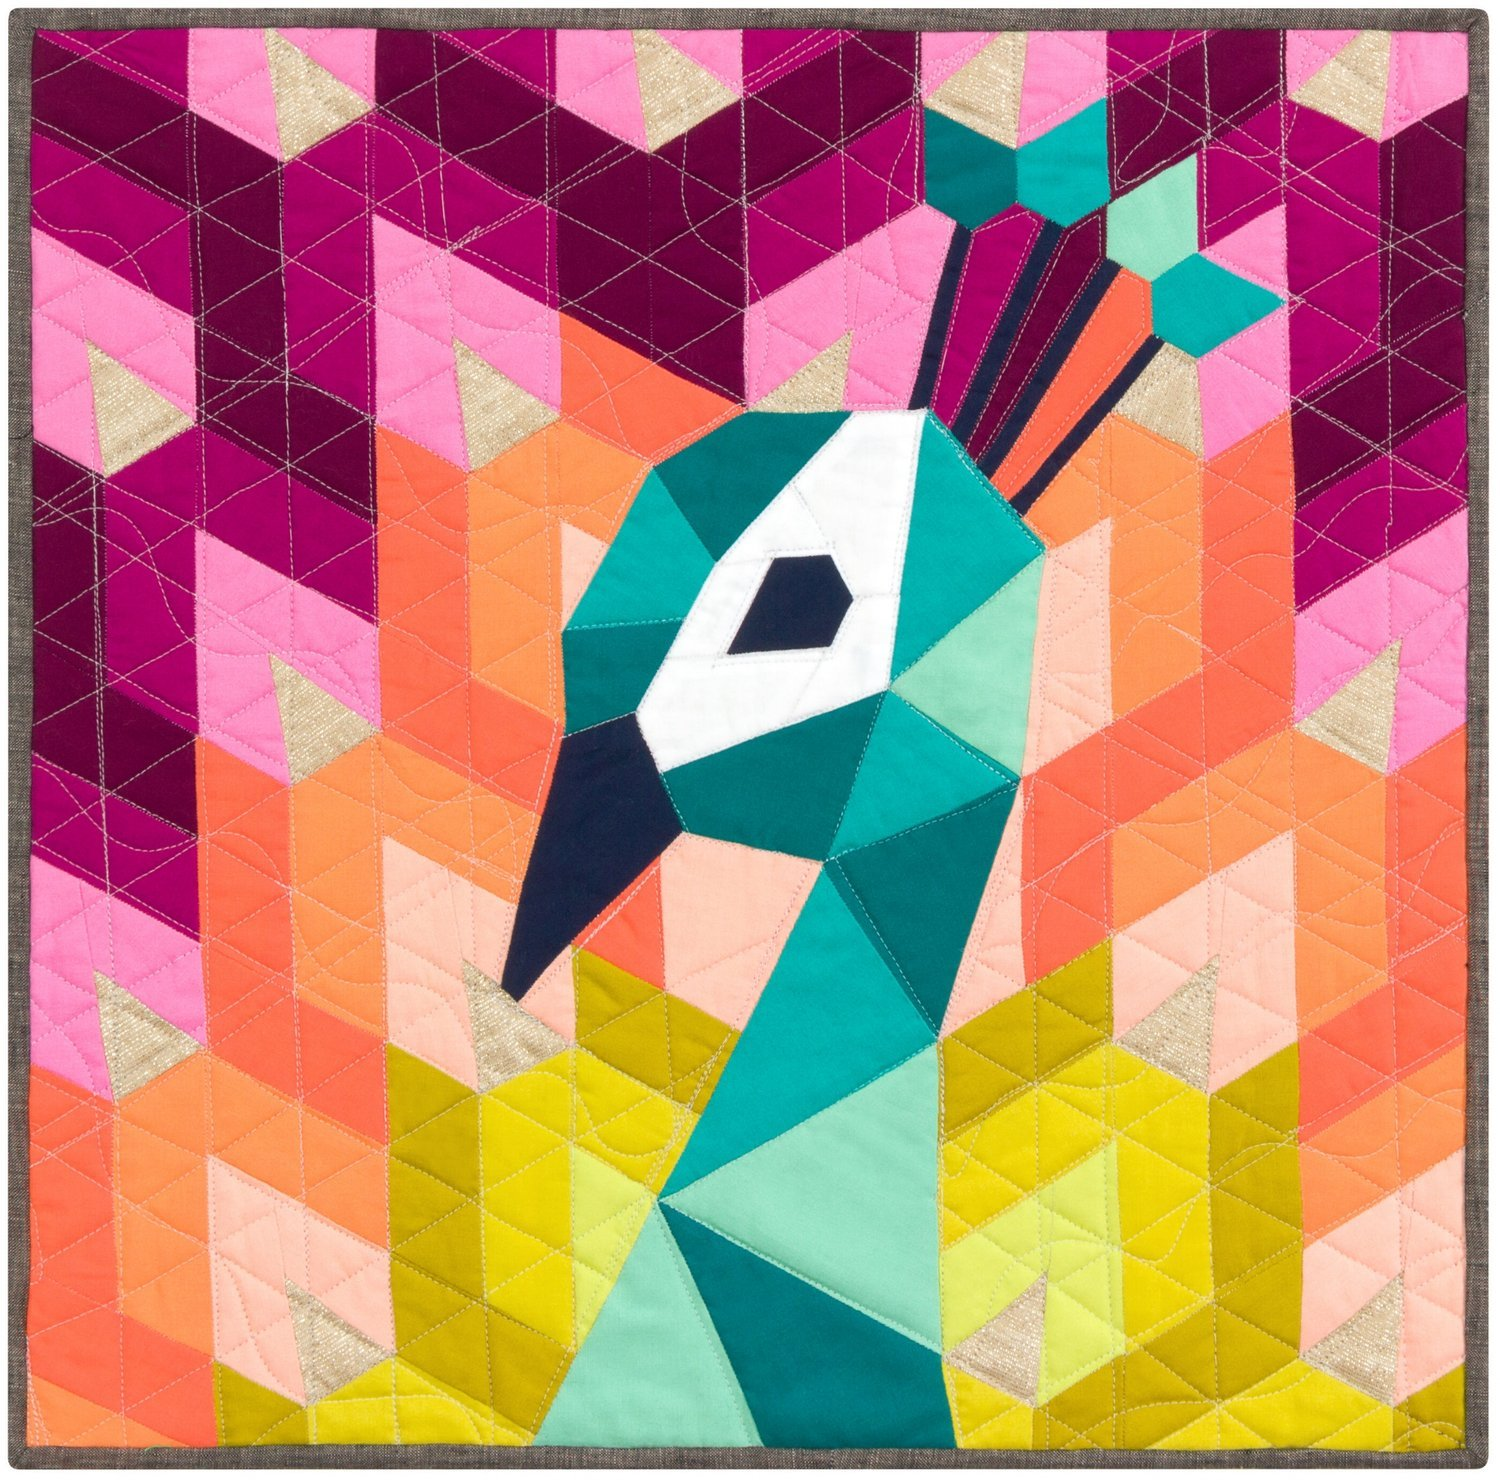 Pattern - Violet Craft - The Peacock (English Paper Piecing Project)